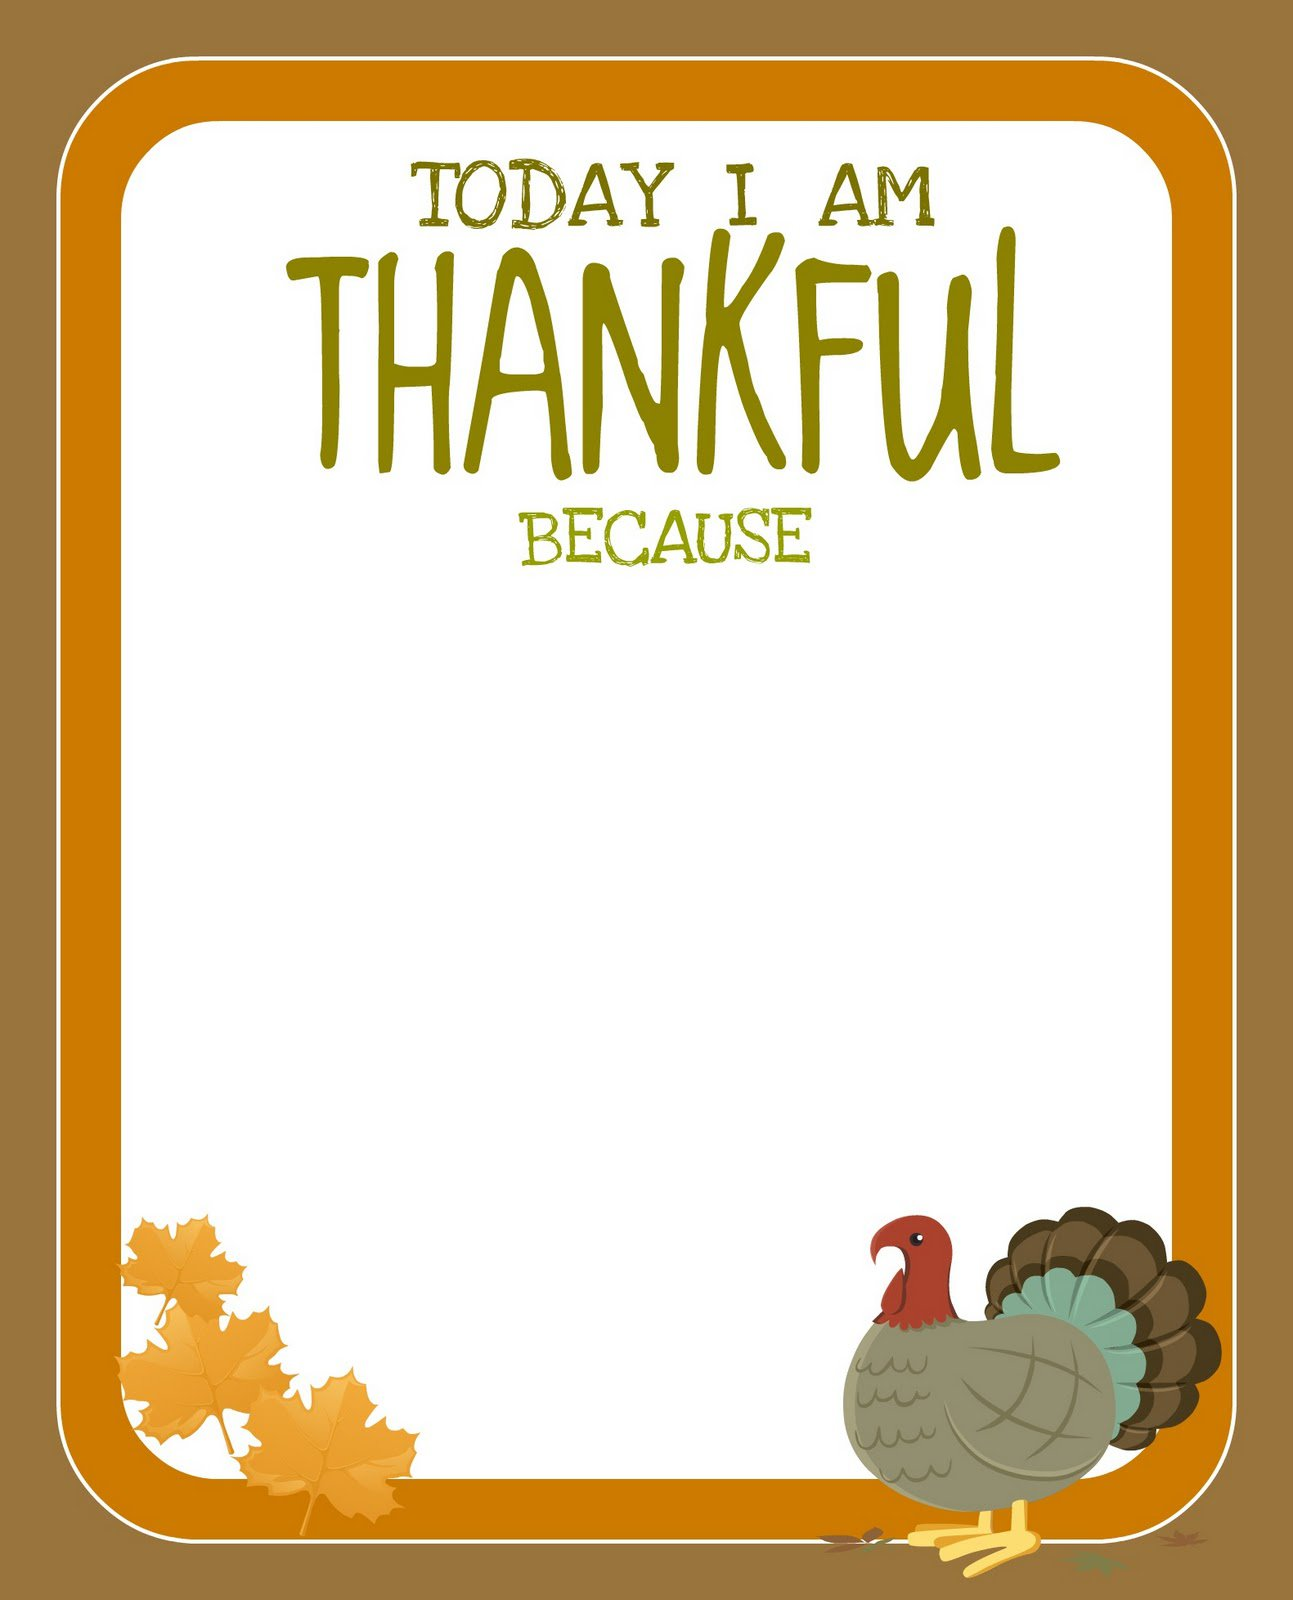 Printable Thanksgiving Invitations Cards